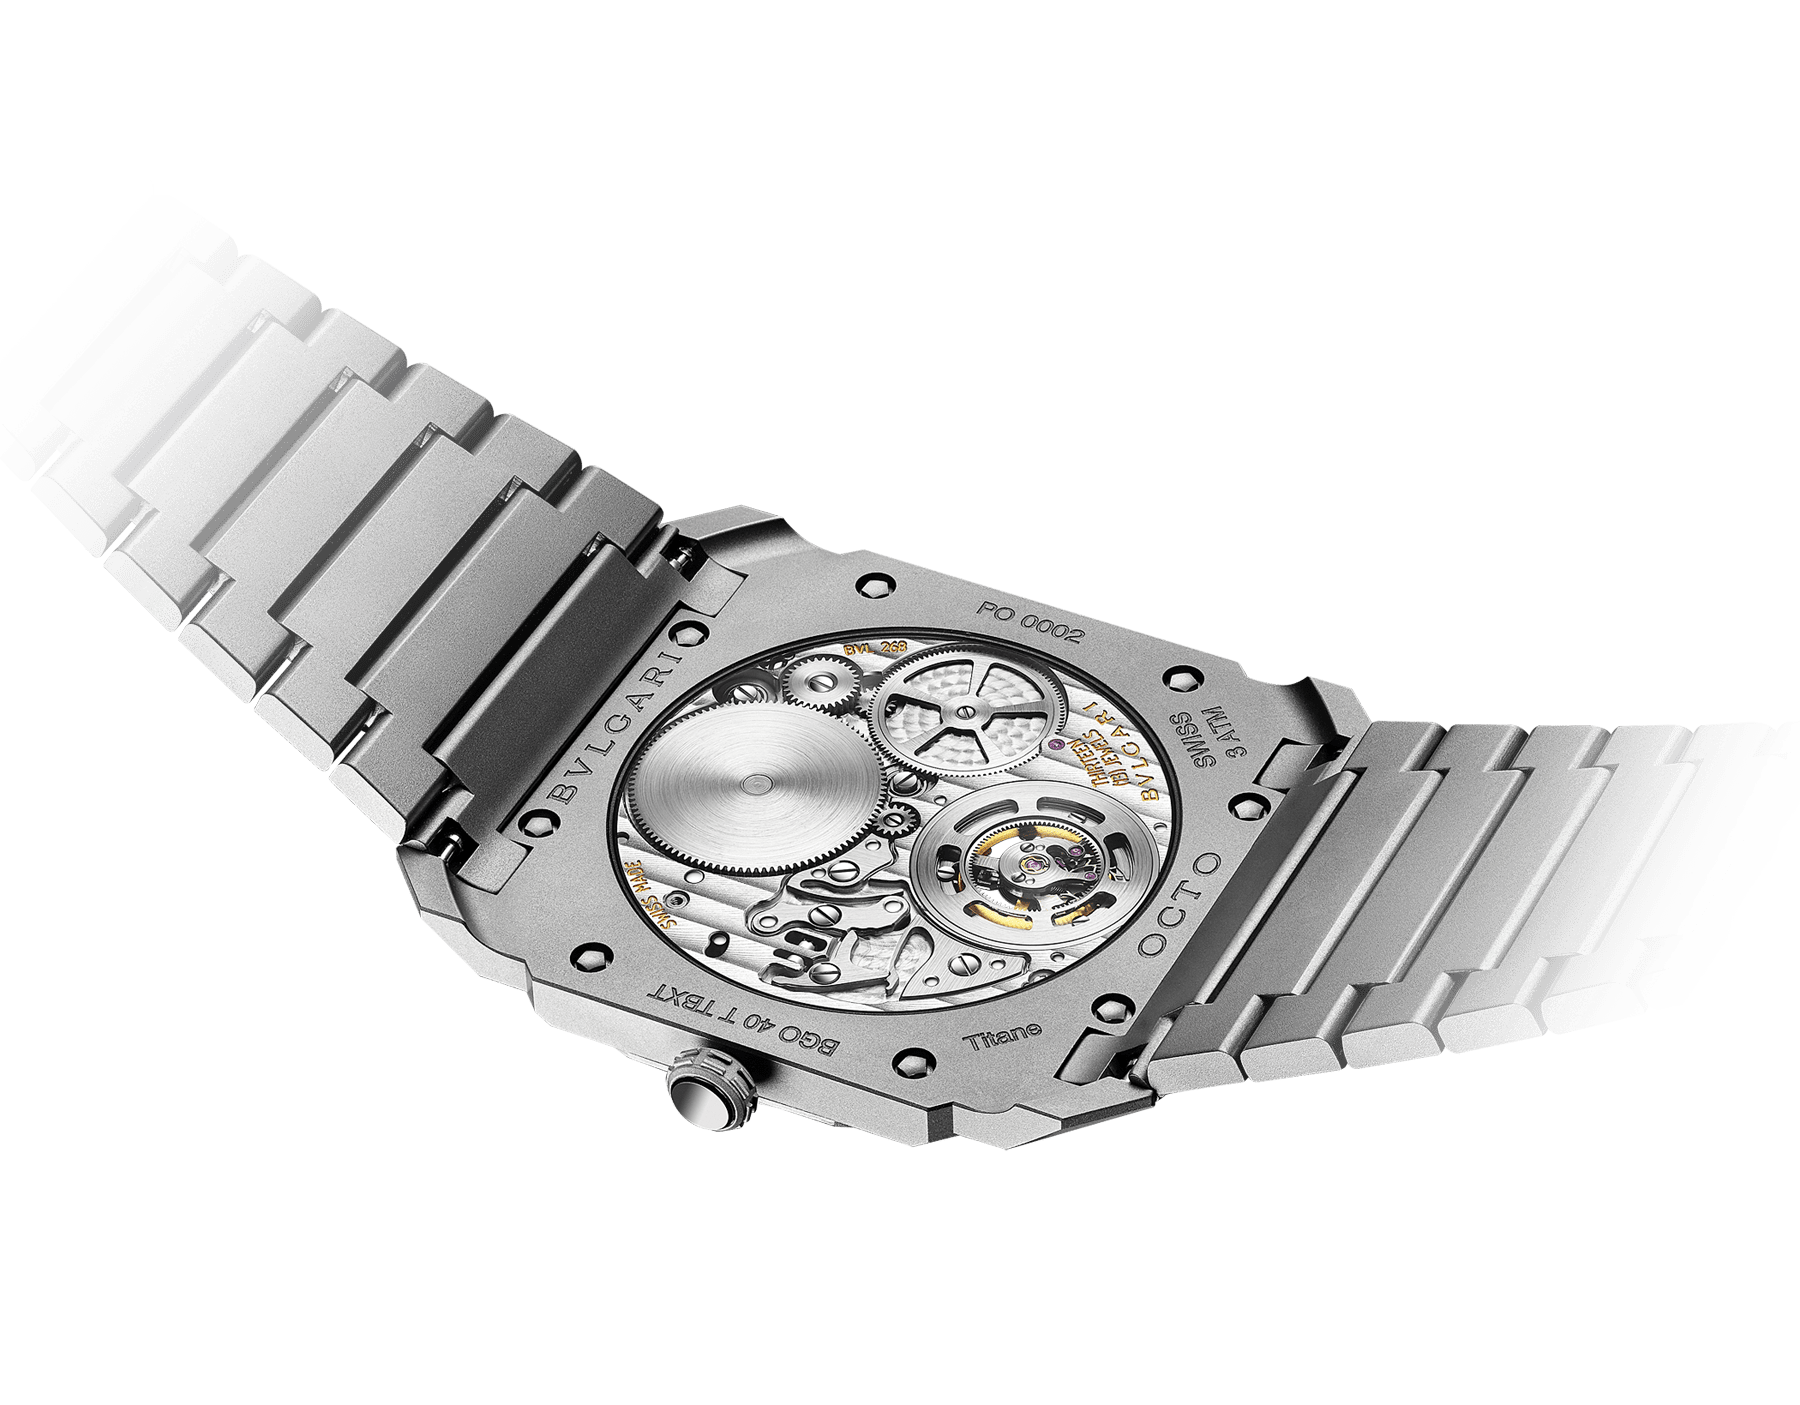 Octo Finissimo Tourbillon watch with mechanical manufacture movement, flying see-through tourbillon, manual winding, sandblasted titanium ultra-thin case, dial and bracelet 103016 image 2